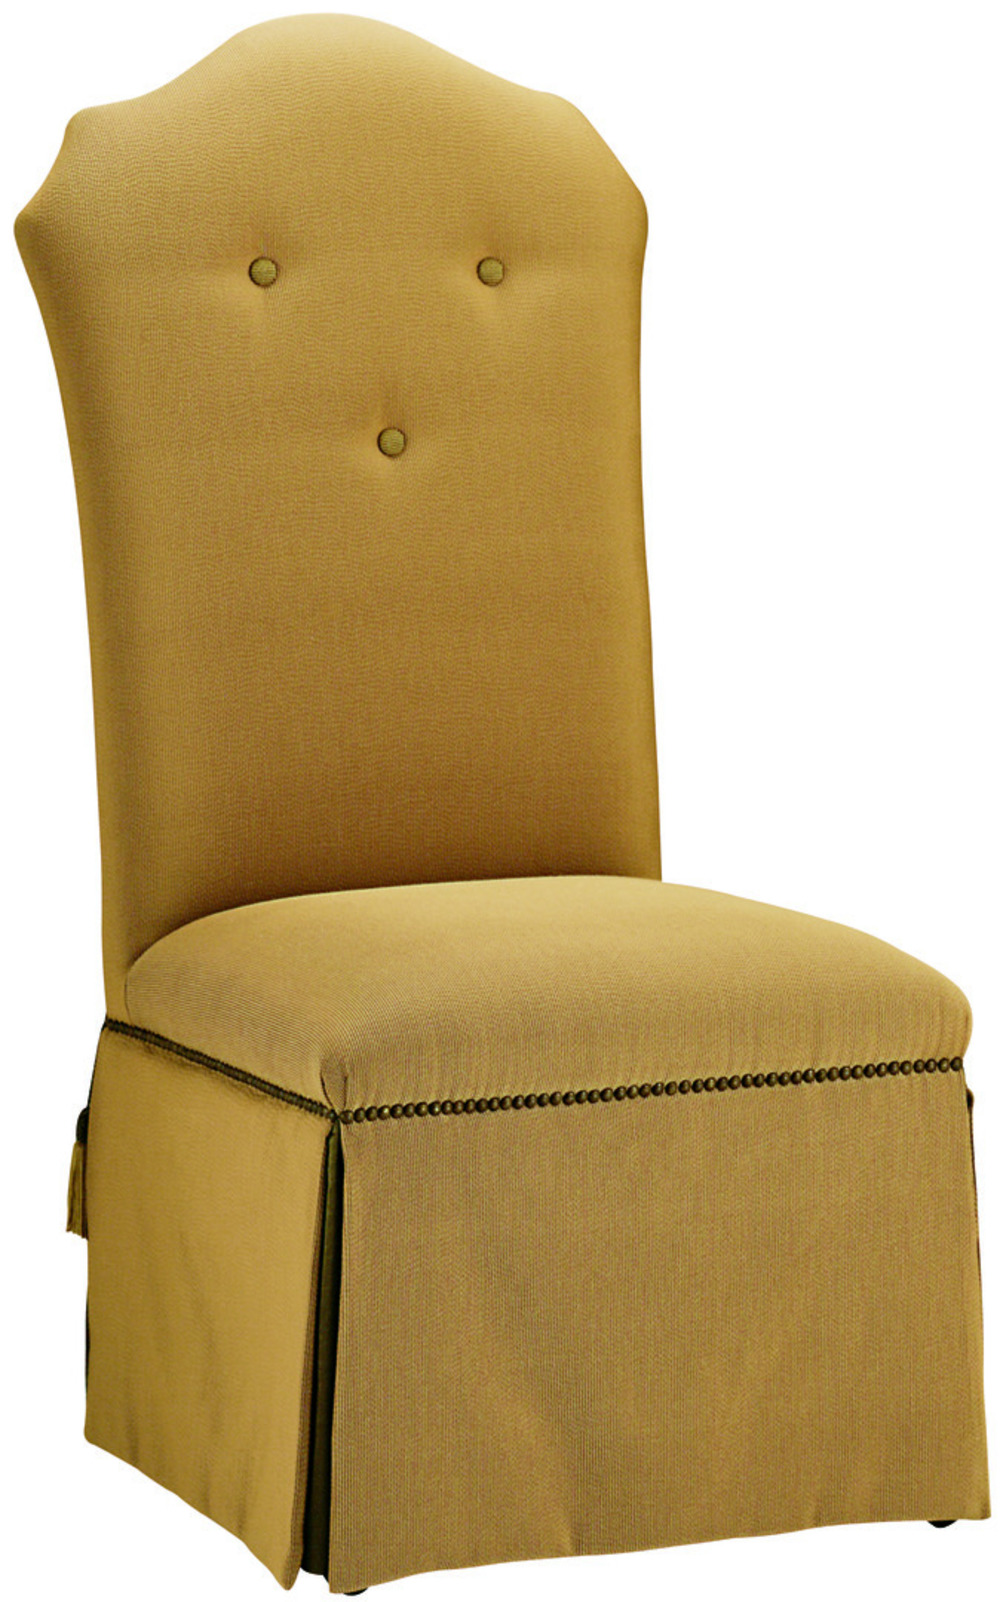 Marge Carson - Opera Side Chair